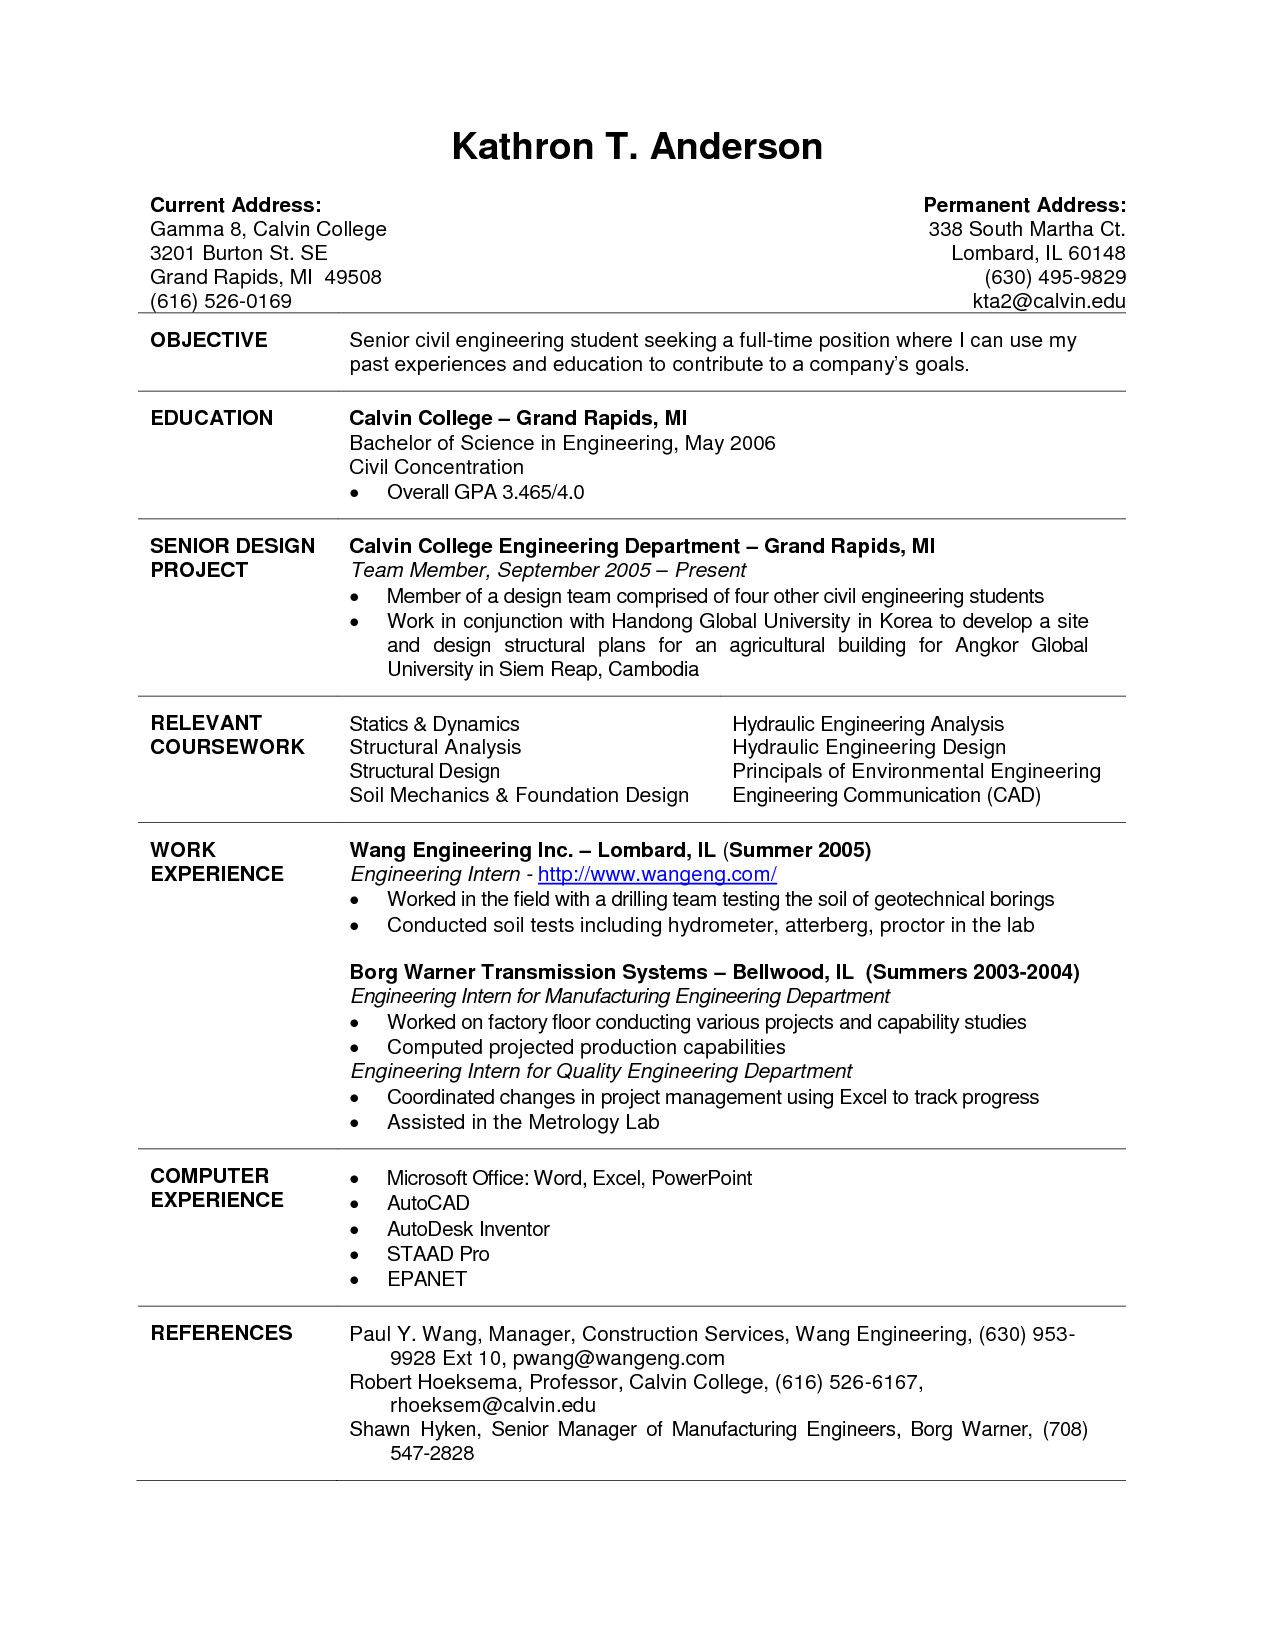 current college student resume in template recent grad samples with cucumber experience Resume Recent College Grad Resume Samples